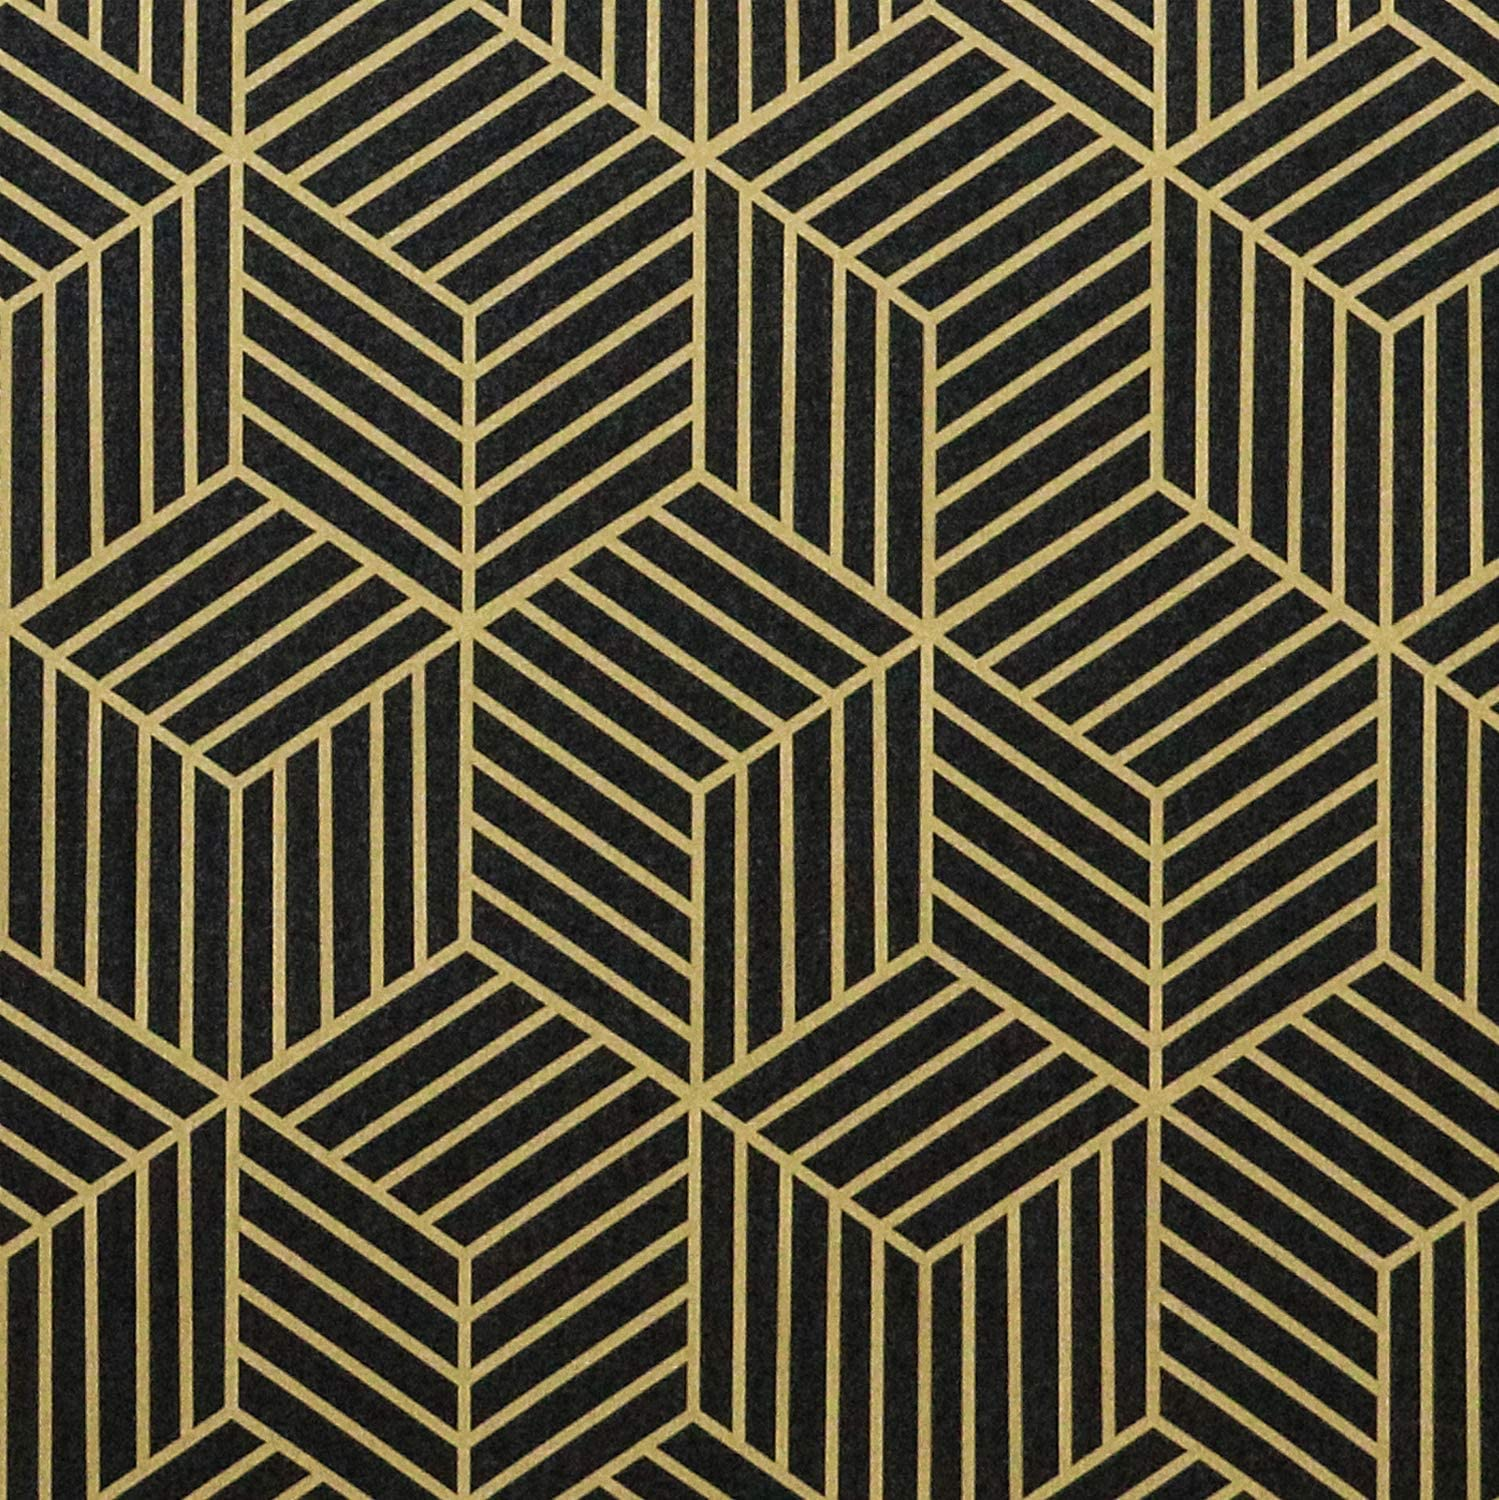 17 7 X118 Peel And Stick Wallpaper Black Contact Paper Gold And Black Peel And Stick Wallpaper Geometric Contact Paper Removable Self Adhesive Wallpaper For Wallcovering Shelf Liner Countertop Home Improvement